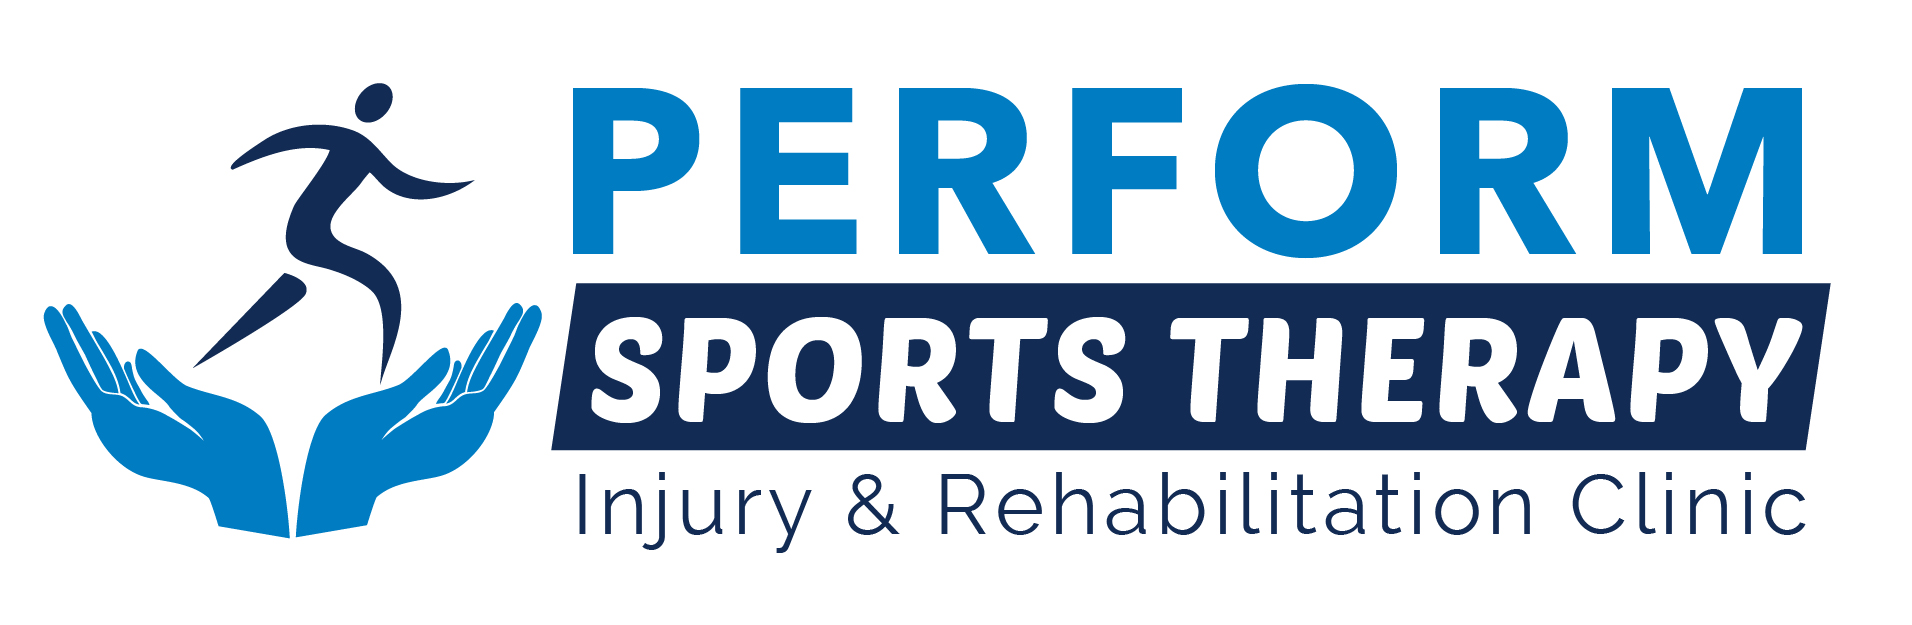 Perform Sports Therapy company logo